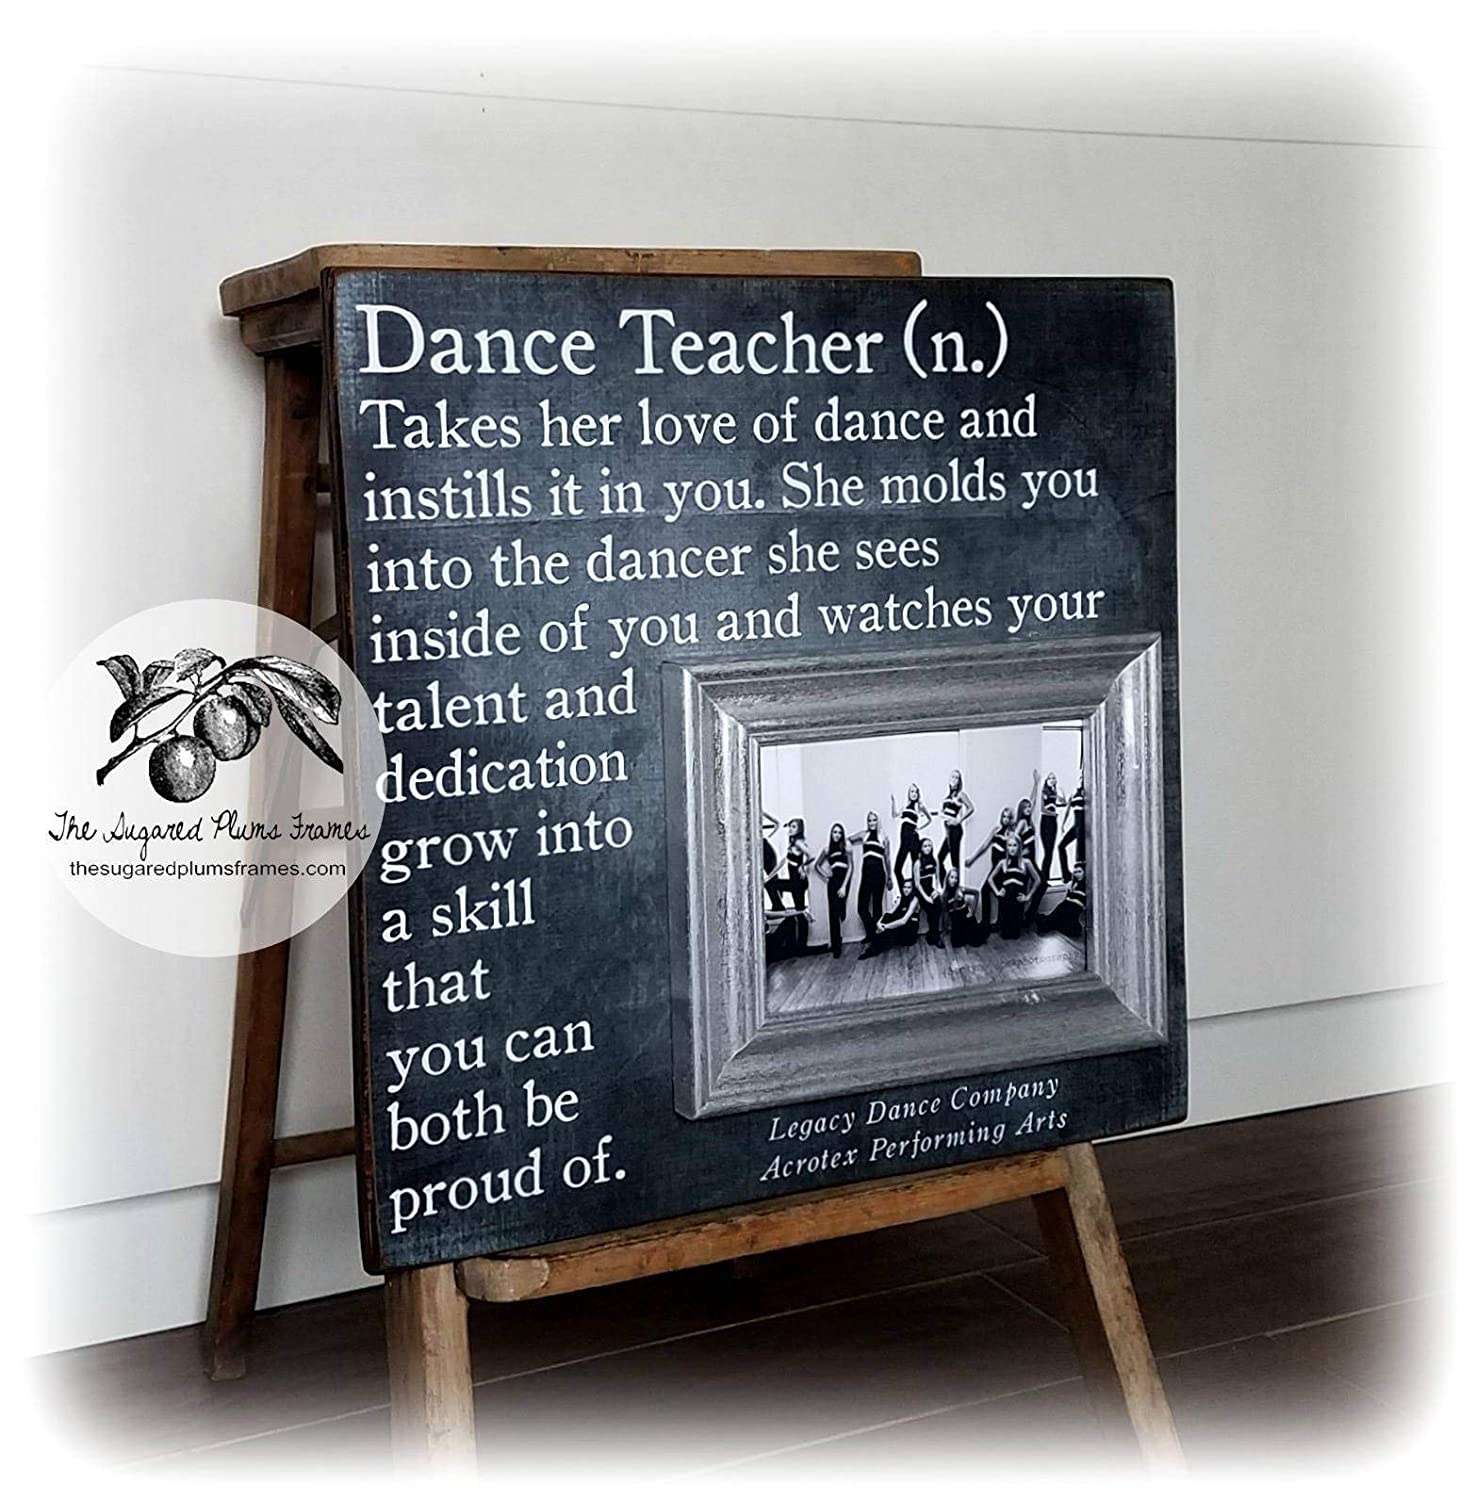 Dance Seasonal Wrap Introduction Teacher Gifts Attention brand Photo Frame